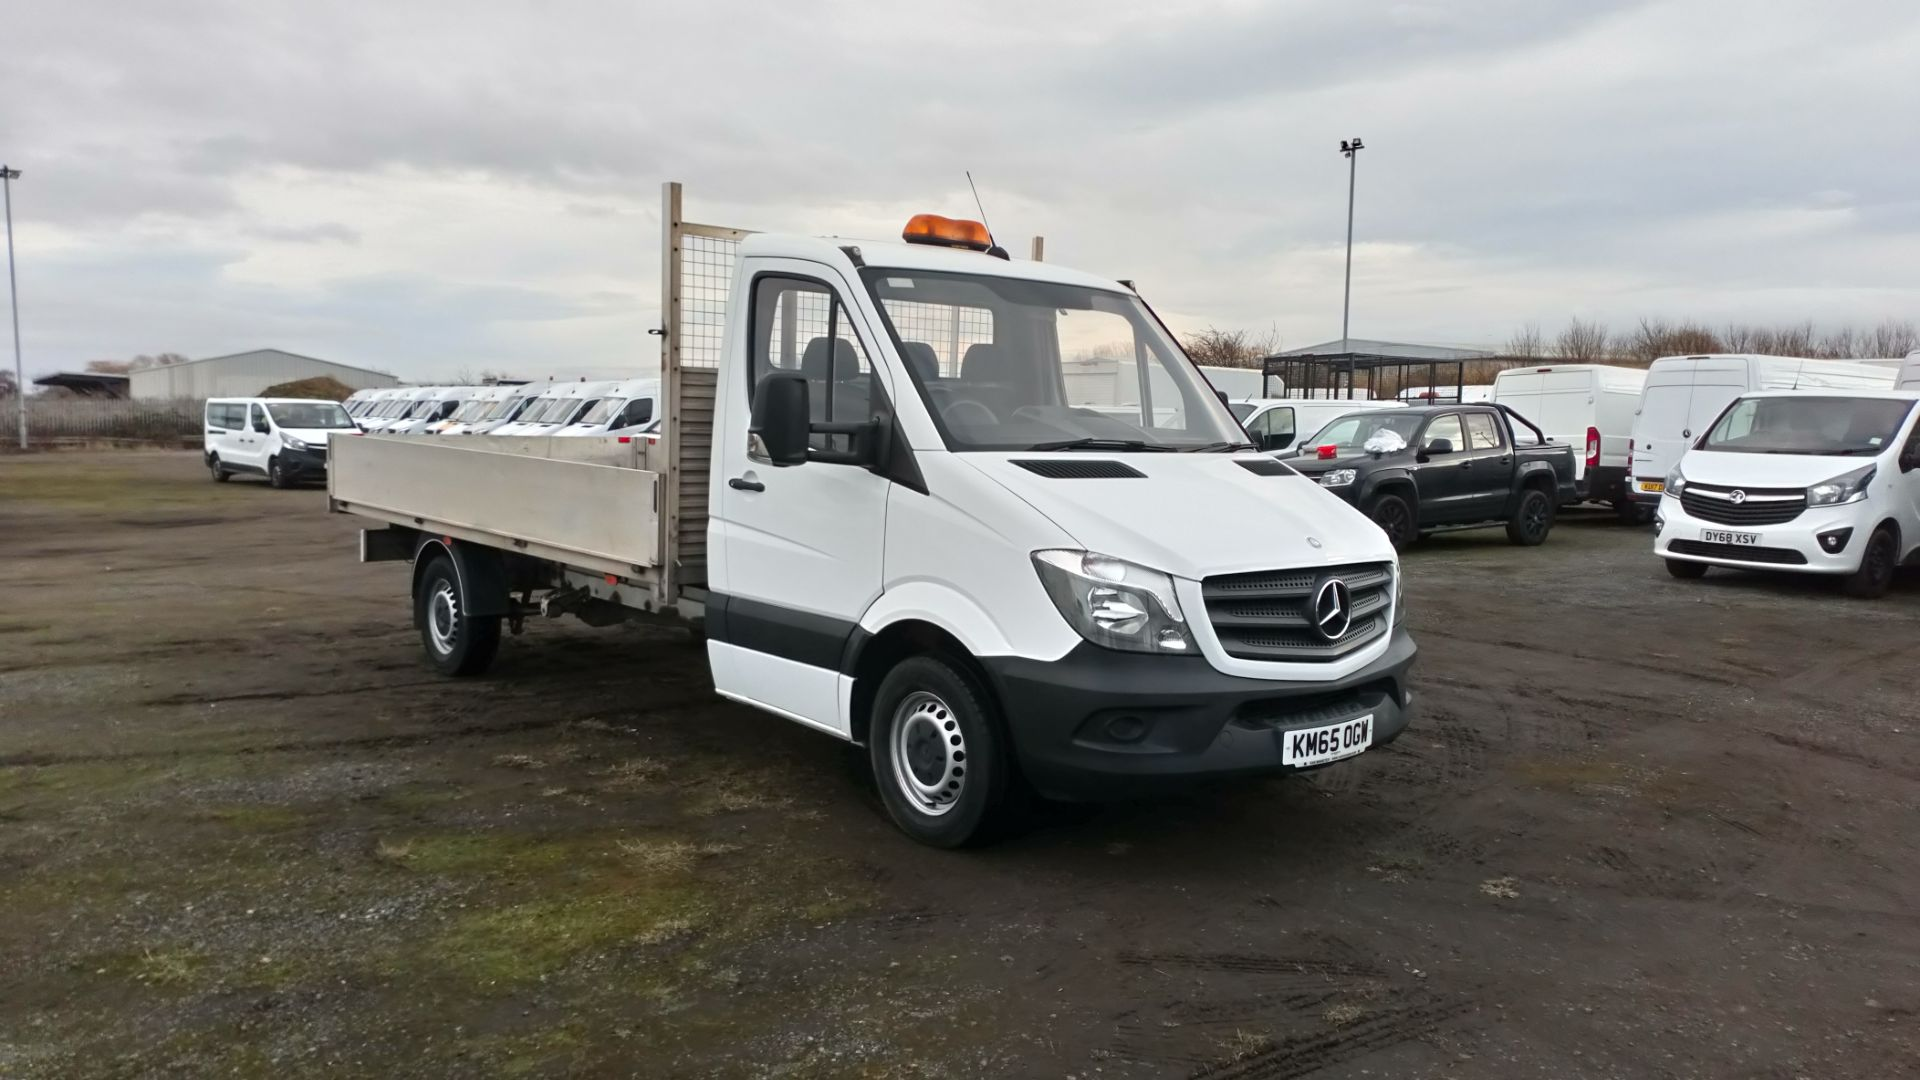 2015 Mercedes-Benz Sprinter 3.5T Chassis Cab (KM65OGW)